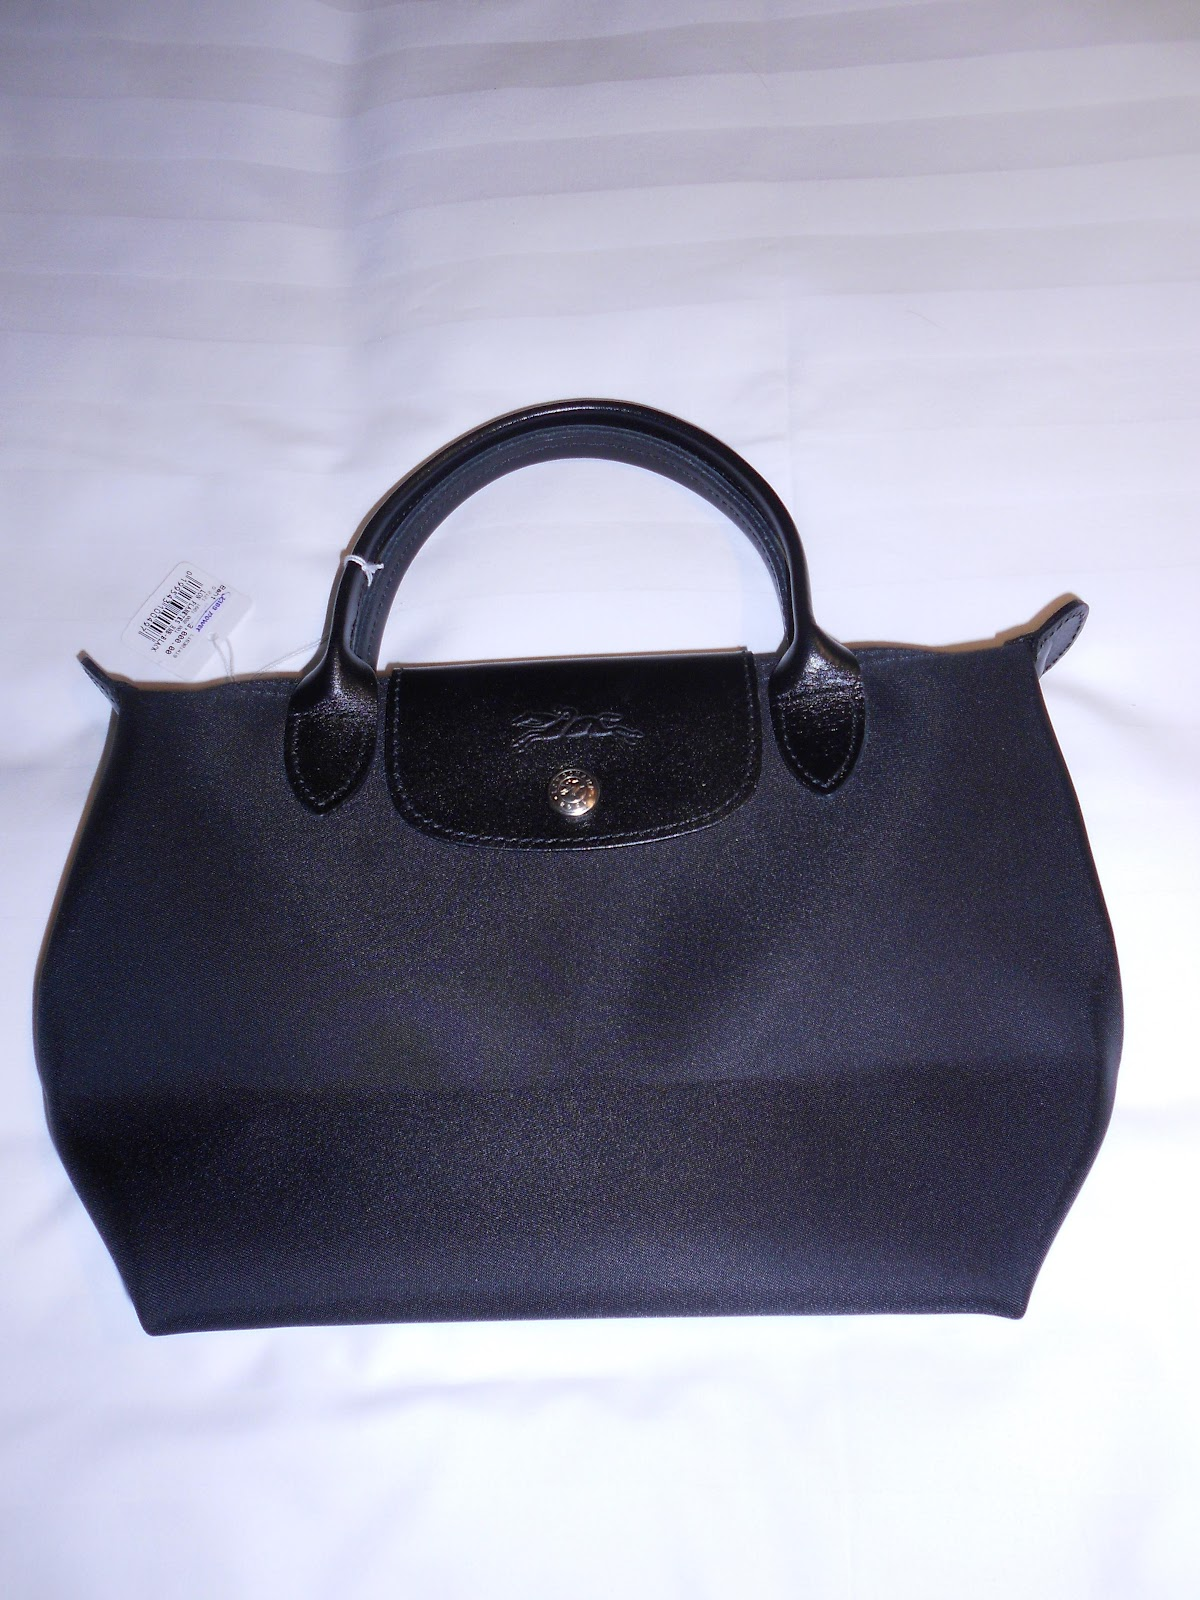 passion for handbags my new black longchamp le pliage bag. Black Bedroom Furniture Sets. Home Design Ideas